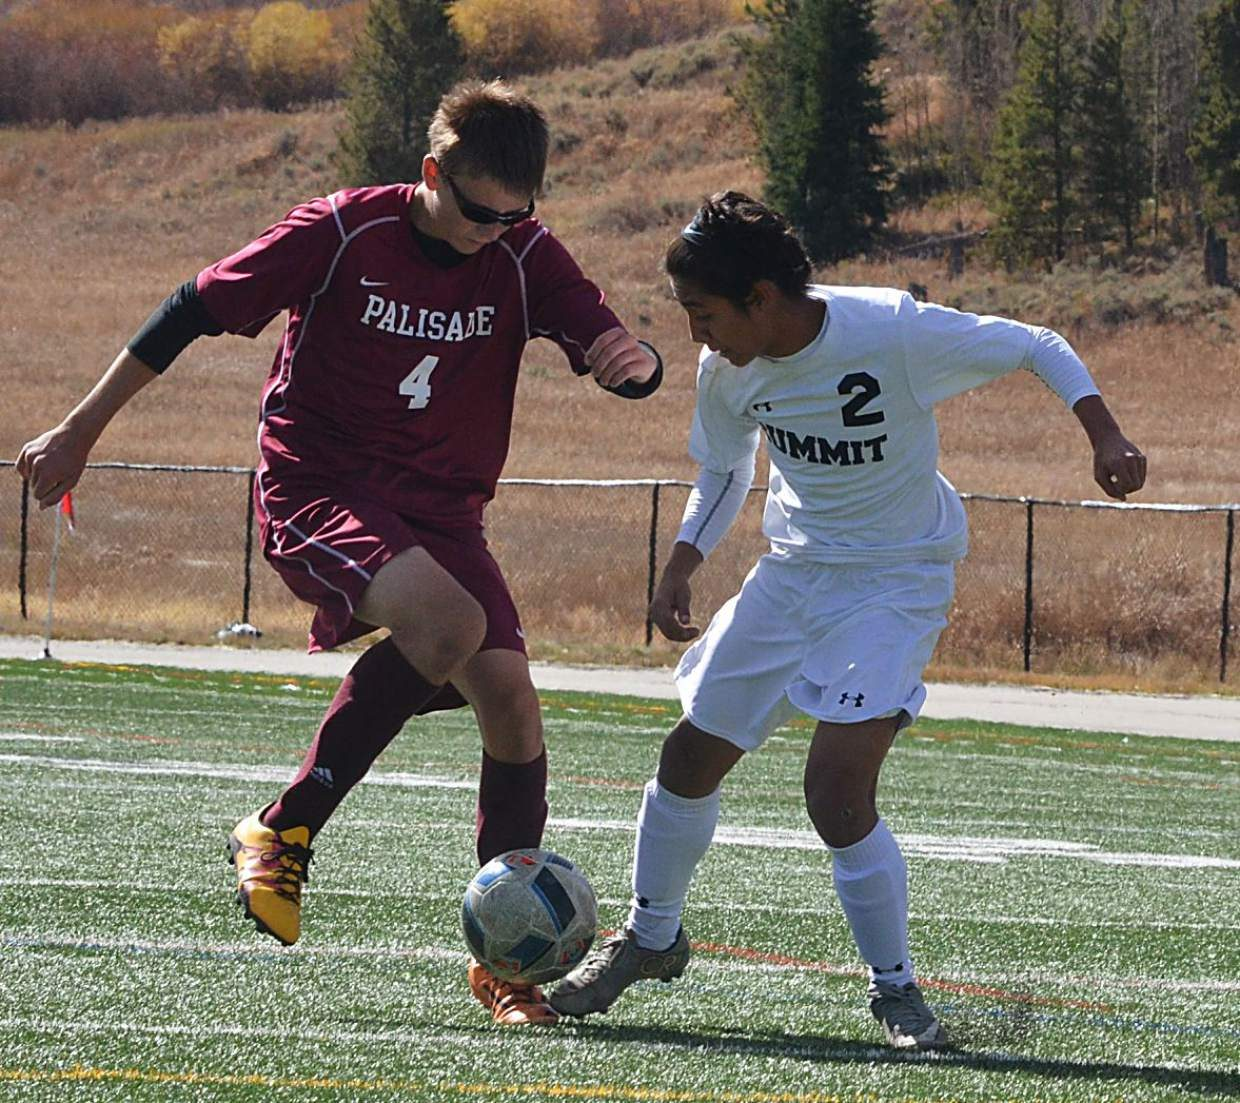 Summit's Farid Infante battles a Palisade defender for the ball during a home varsity soccer match on Oct. 8. The Tigers won, 4-0.